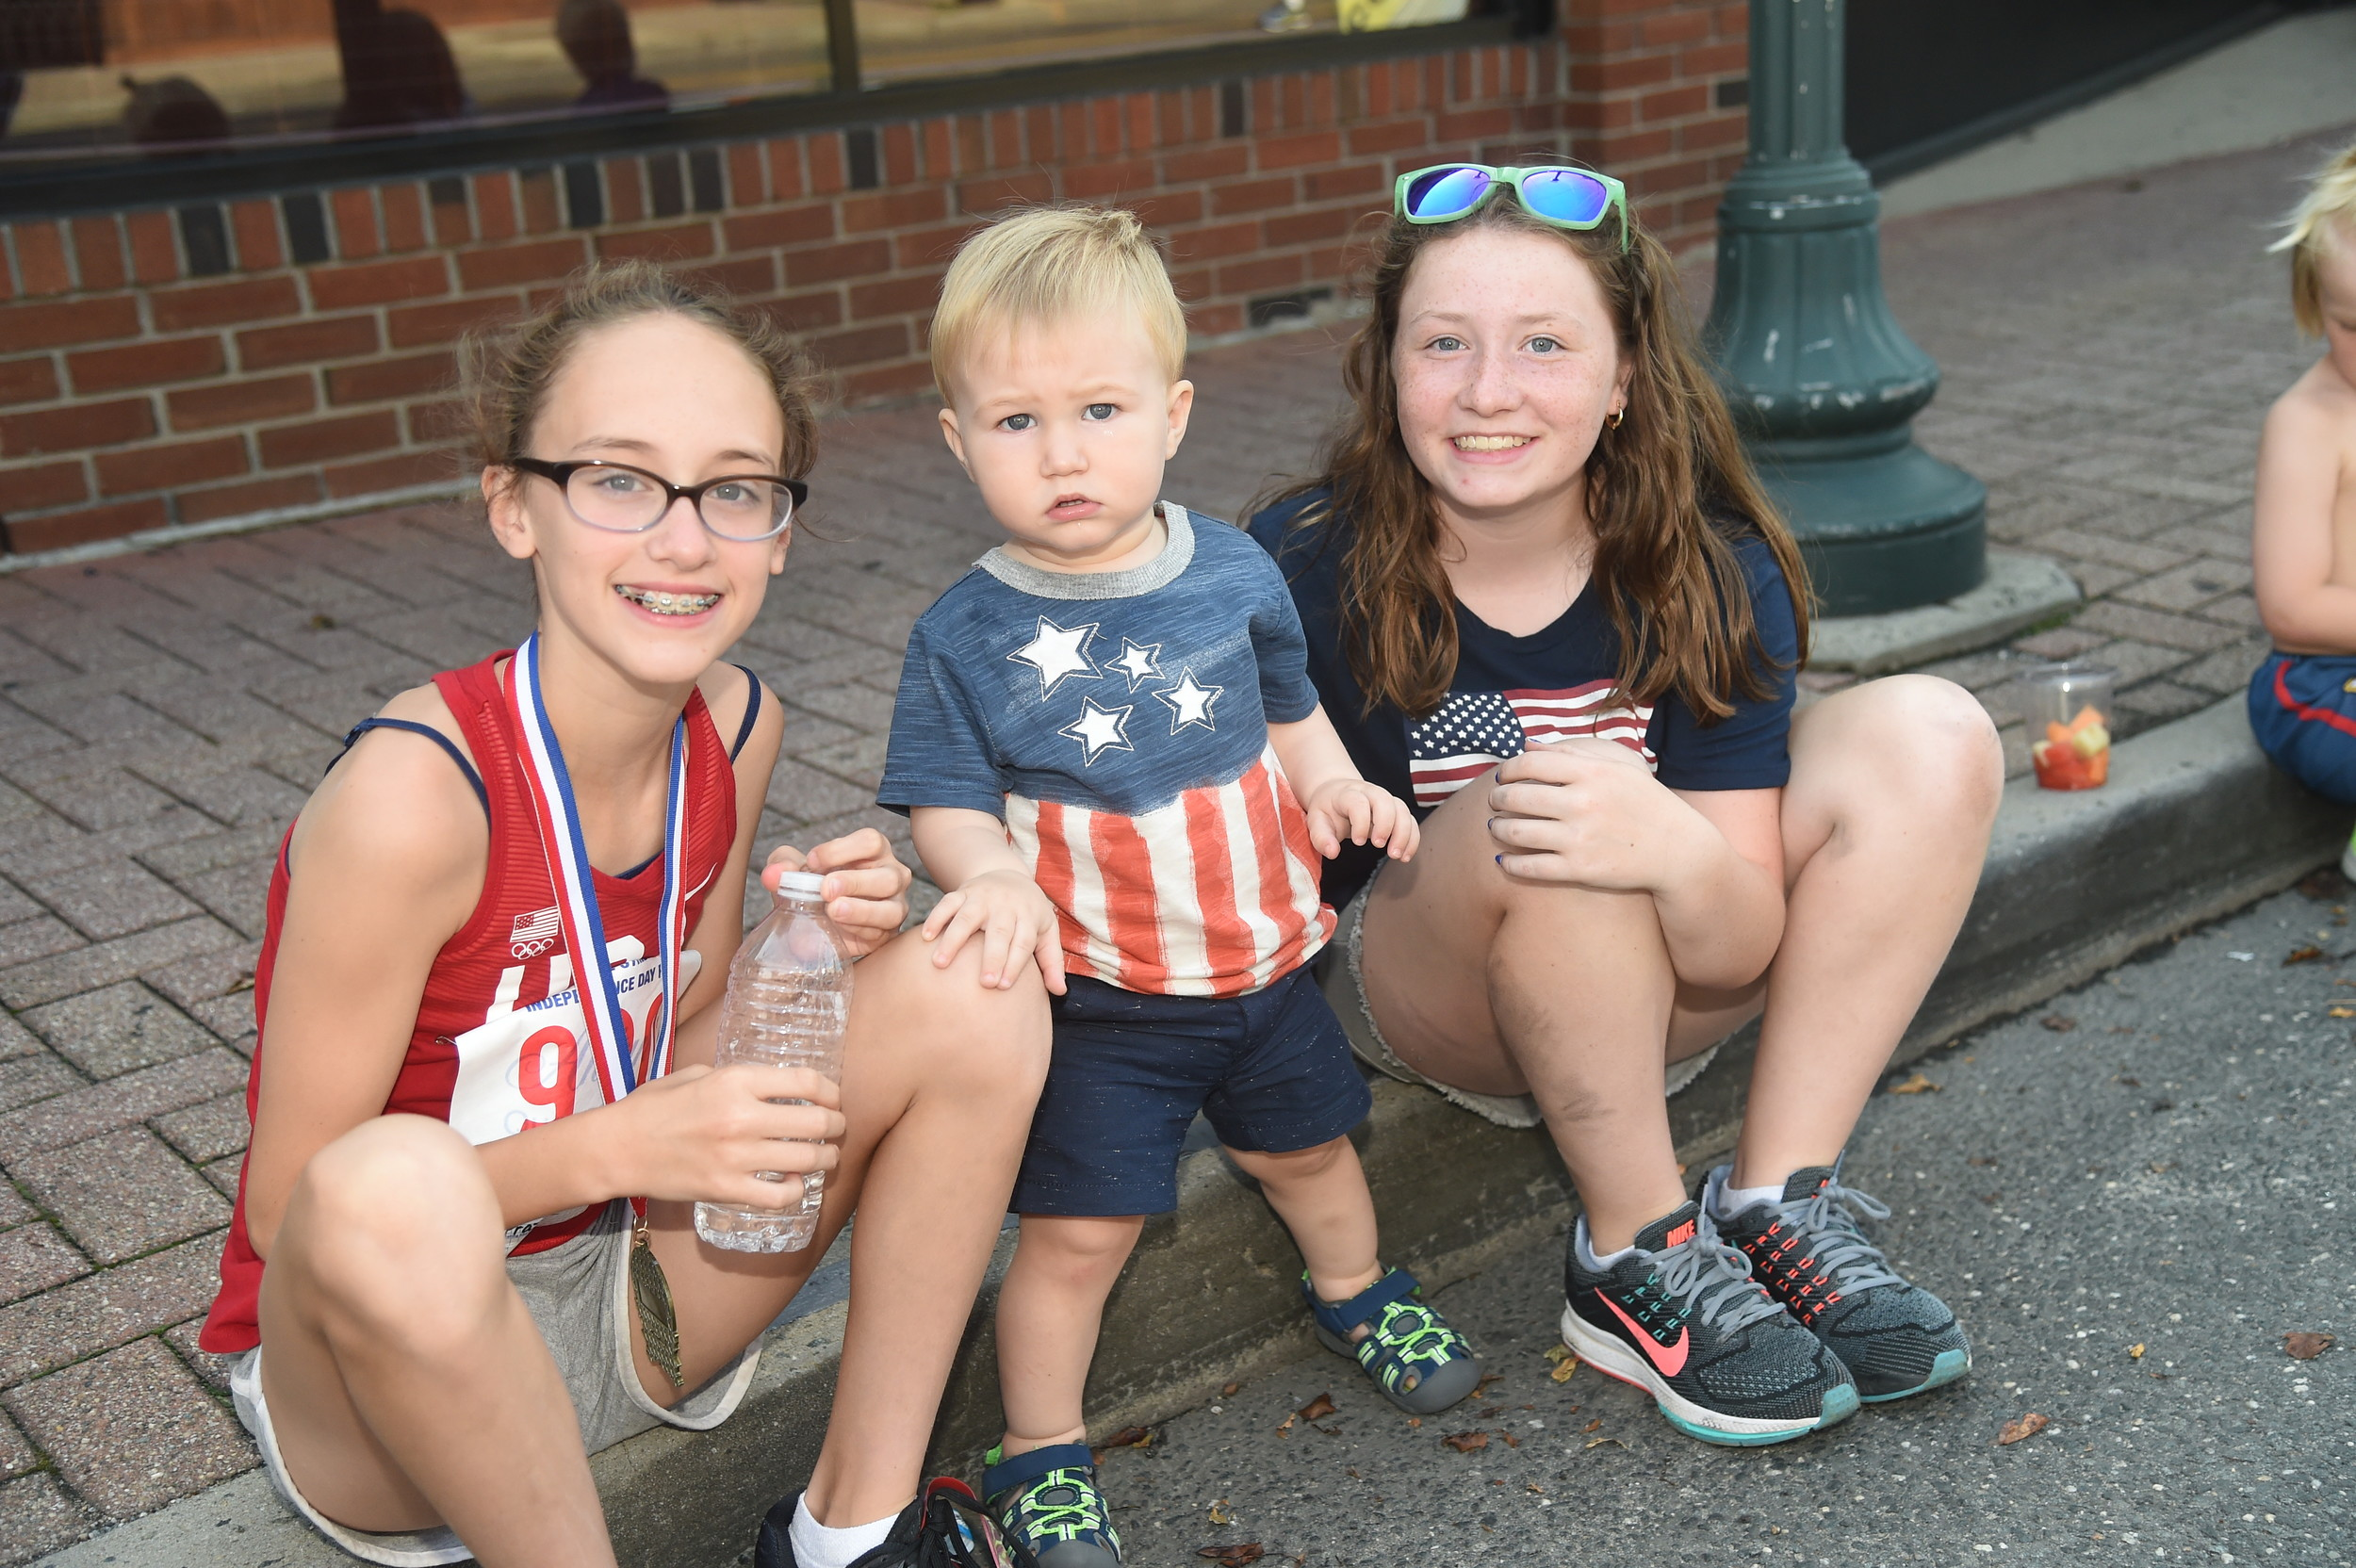 Aislinn, 10, Declan, 1, and Allison Frazer, 12, took a break.